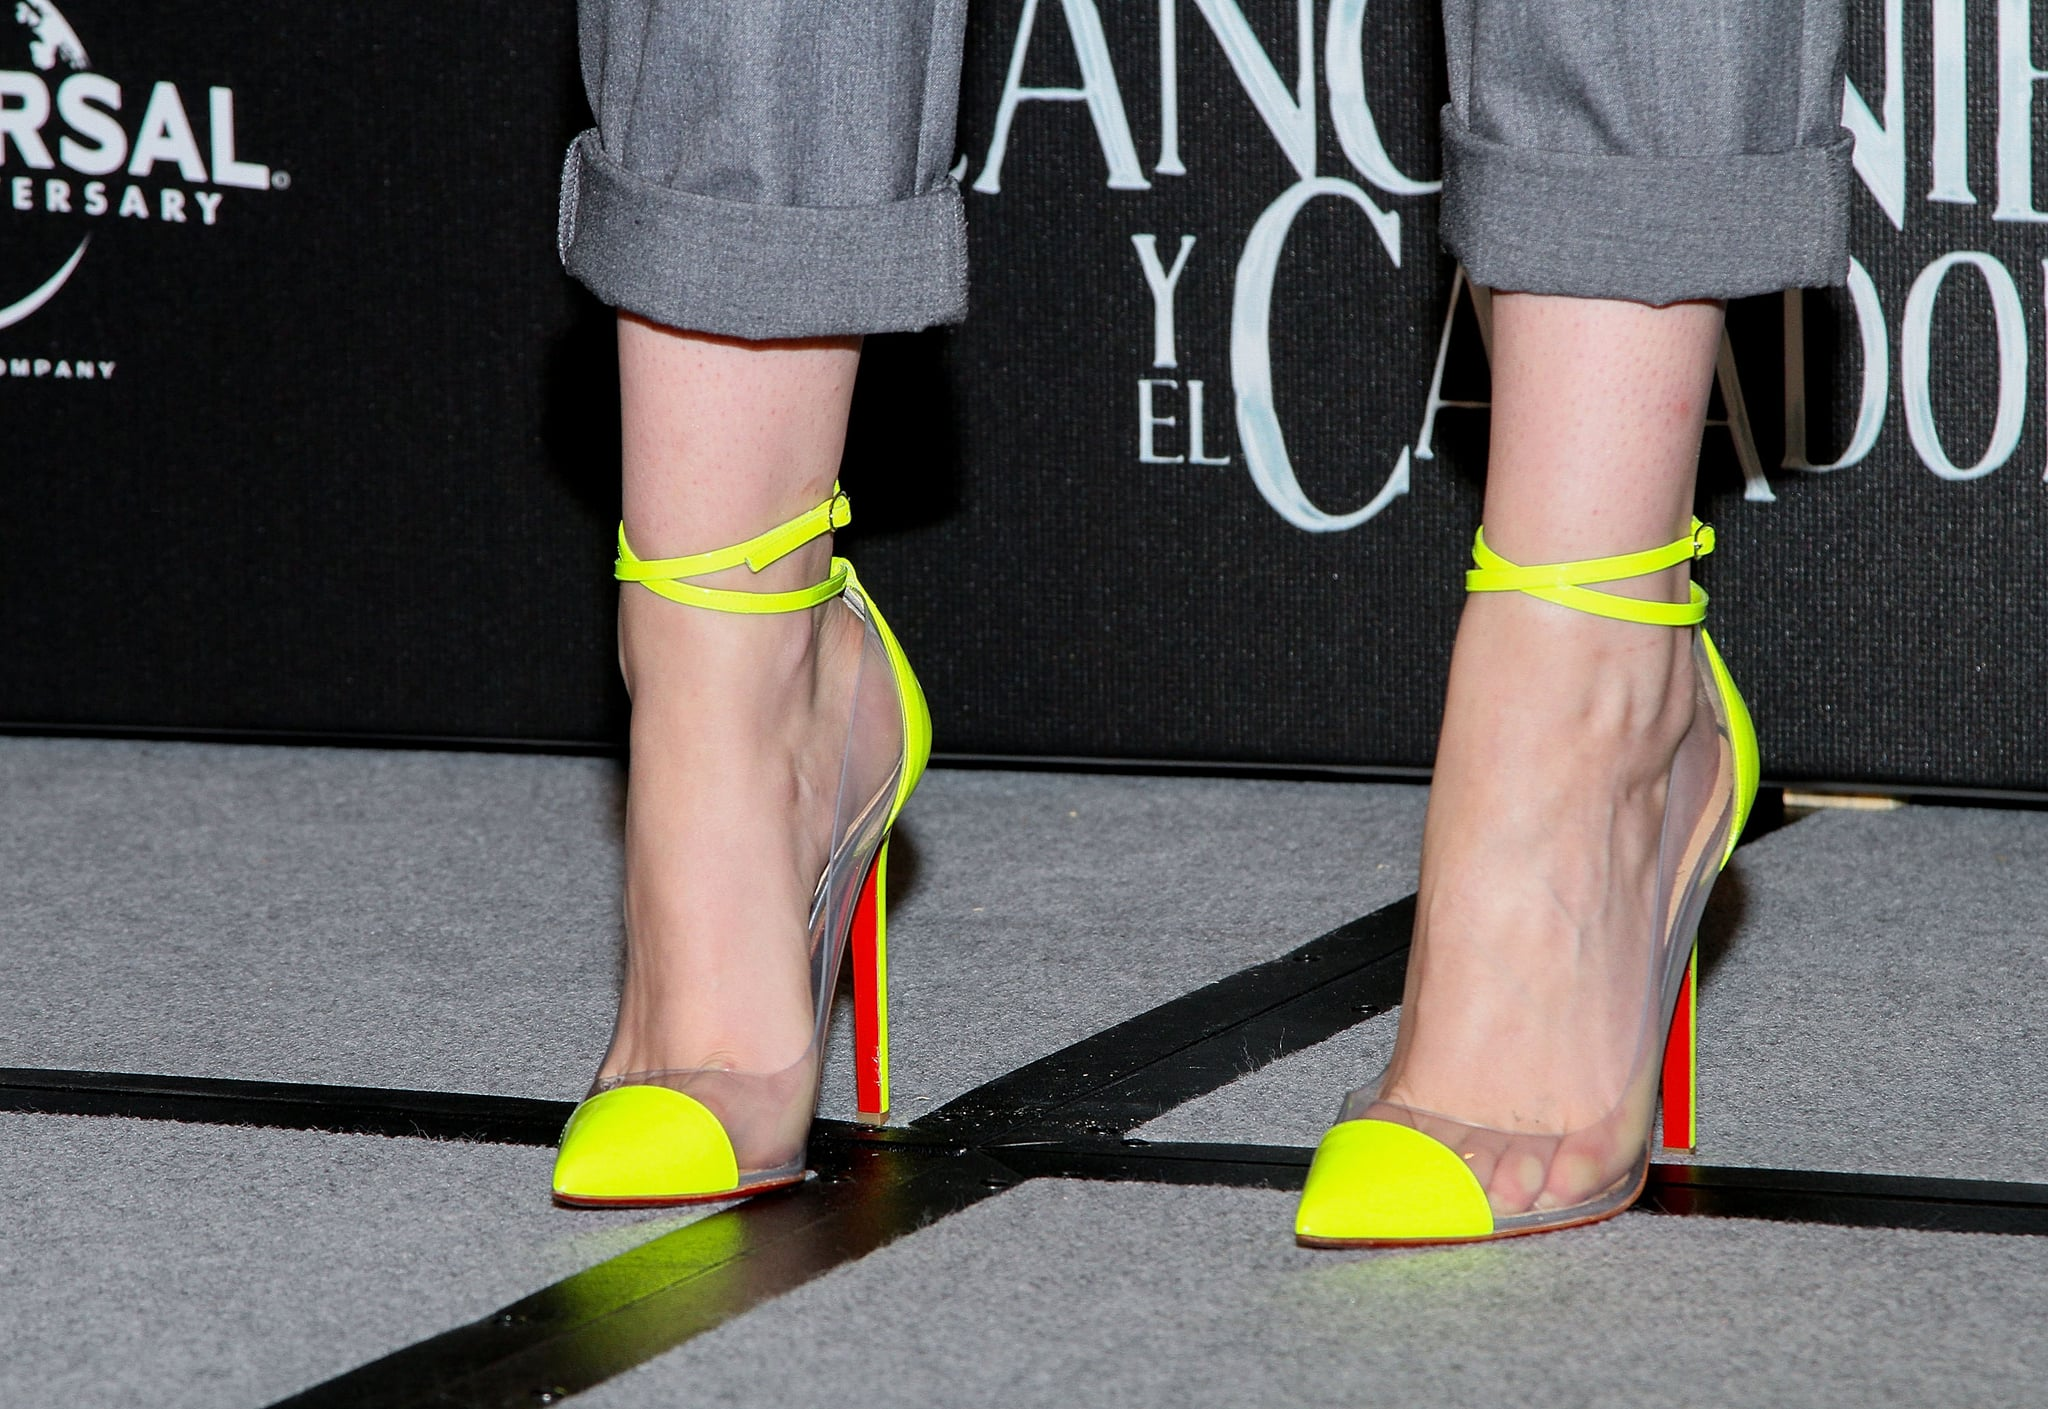 Her neon yellow and clear PVC-infused